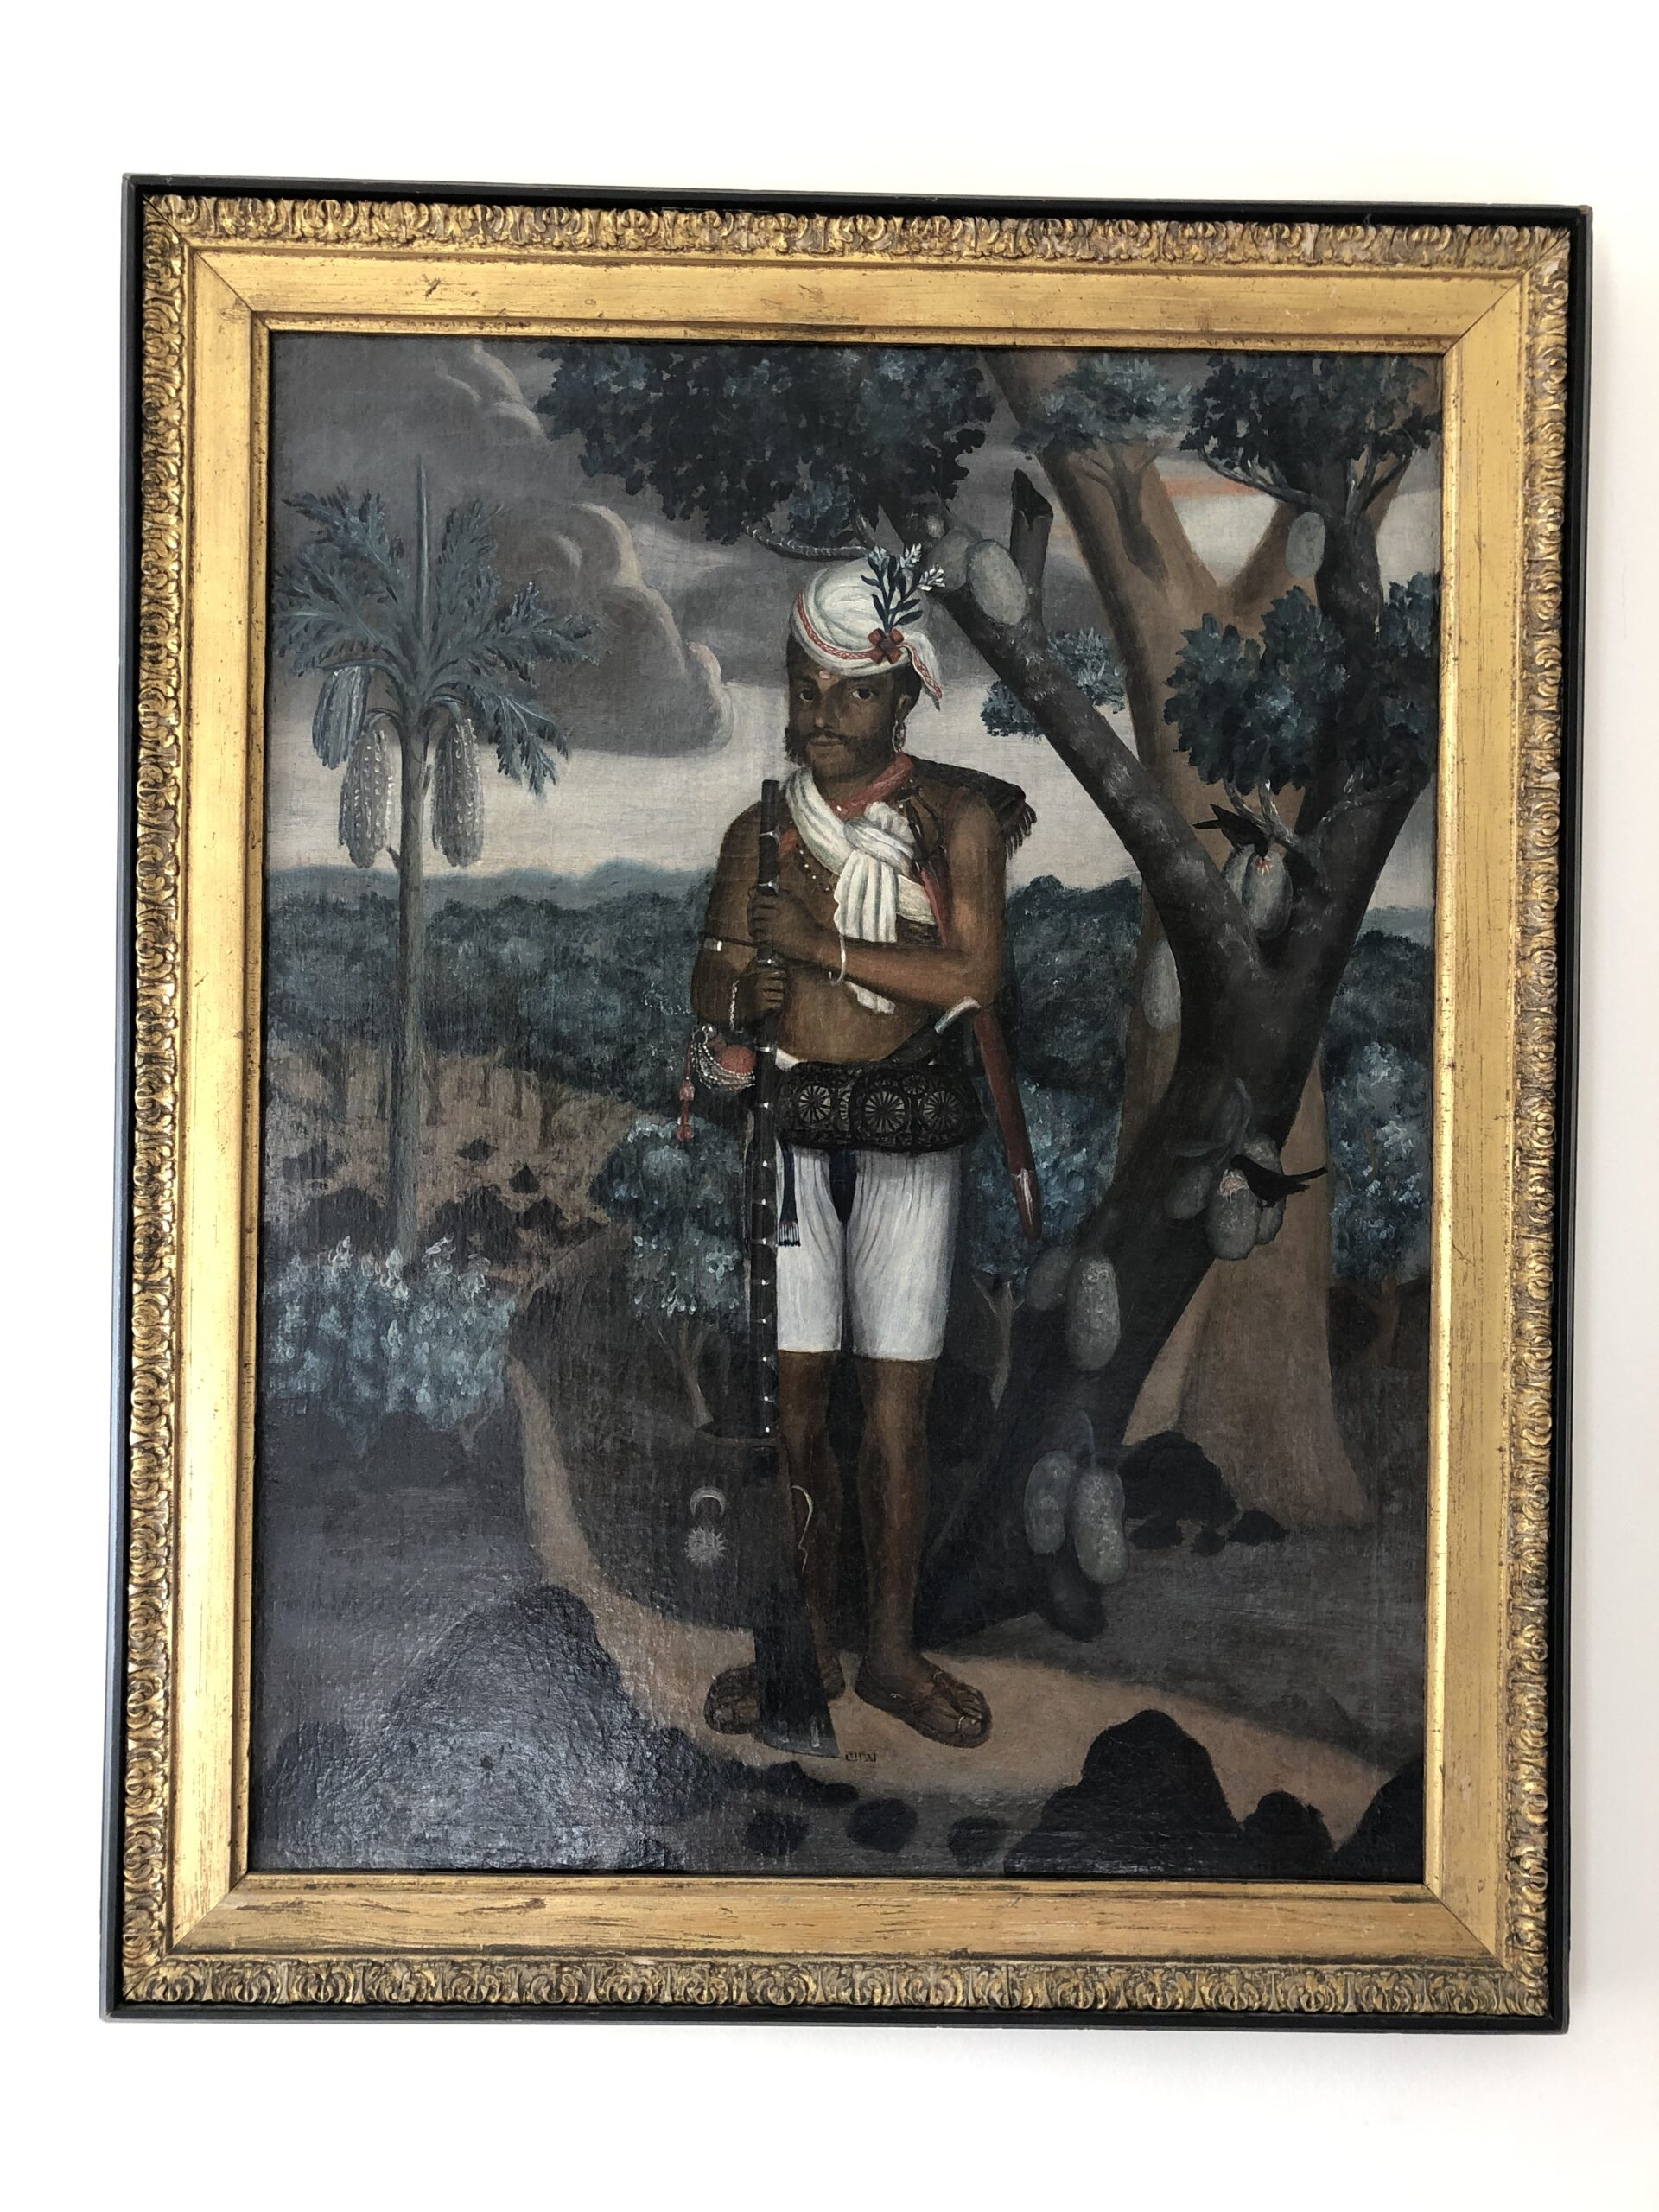 FORGE & LYNCH Portrait of a Sepoy, Indo-Portuguese, late eighteenth century, oil on canvas, 63.3 by 49.8 cm.